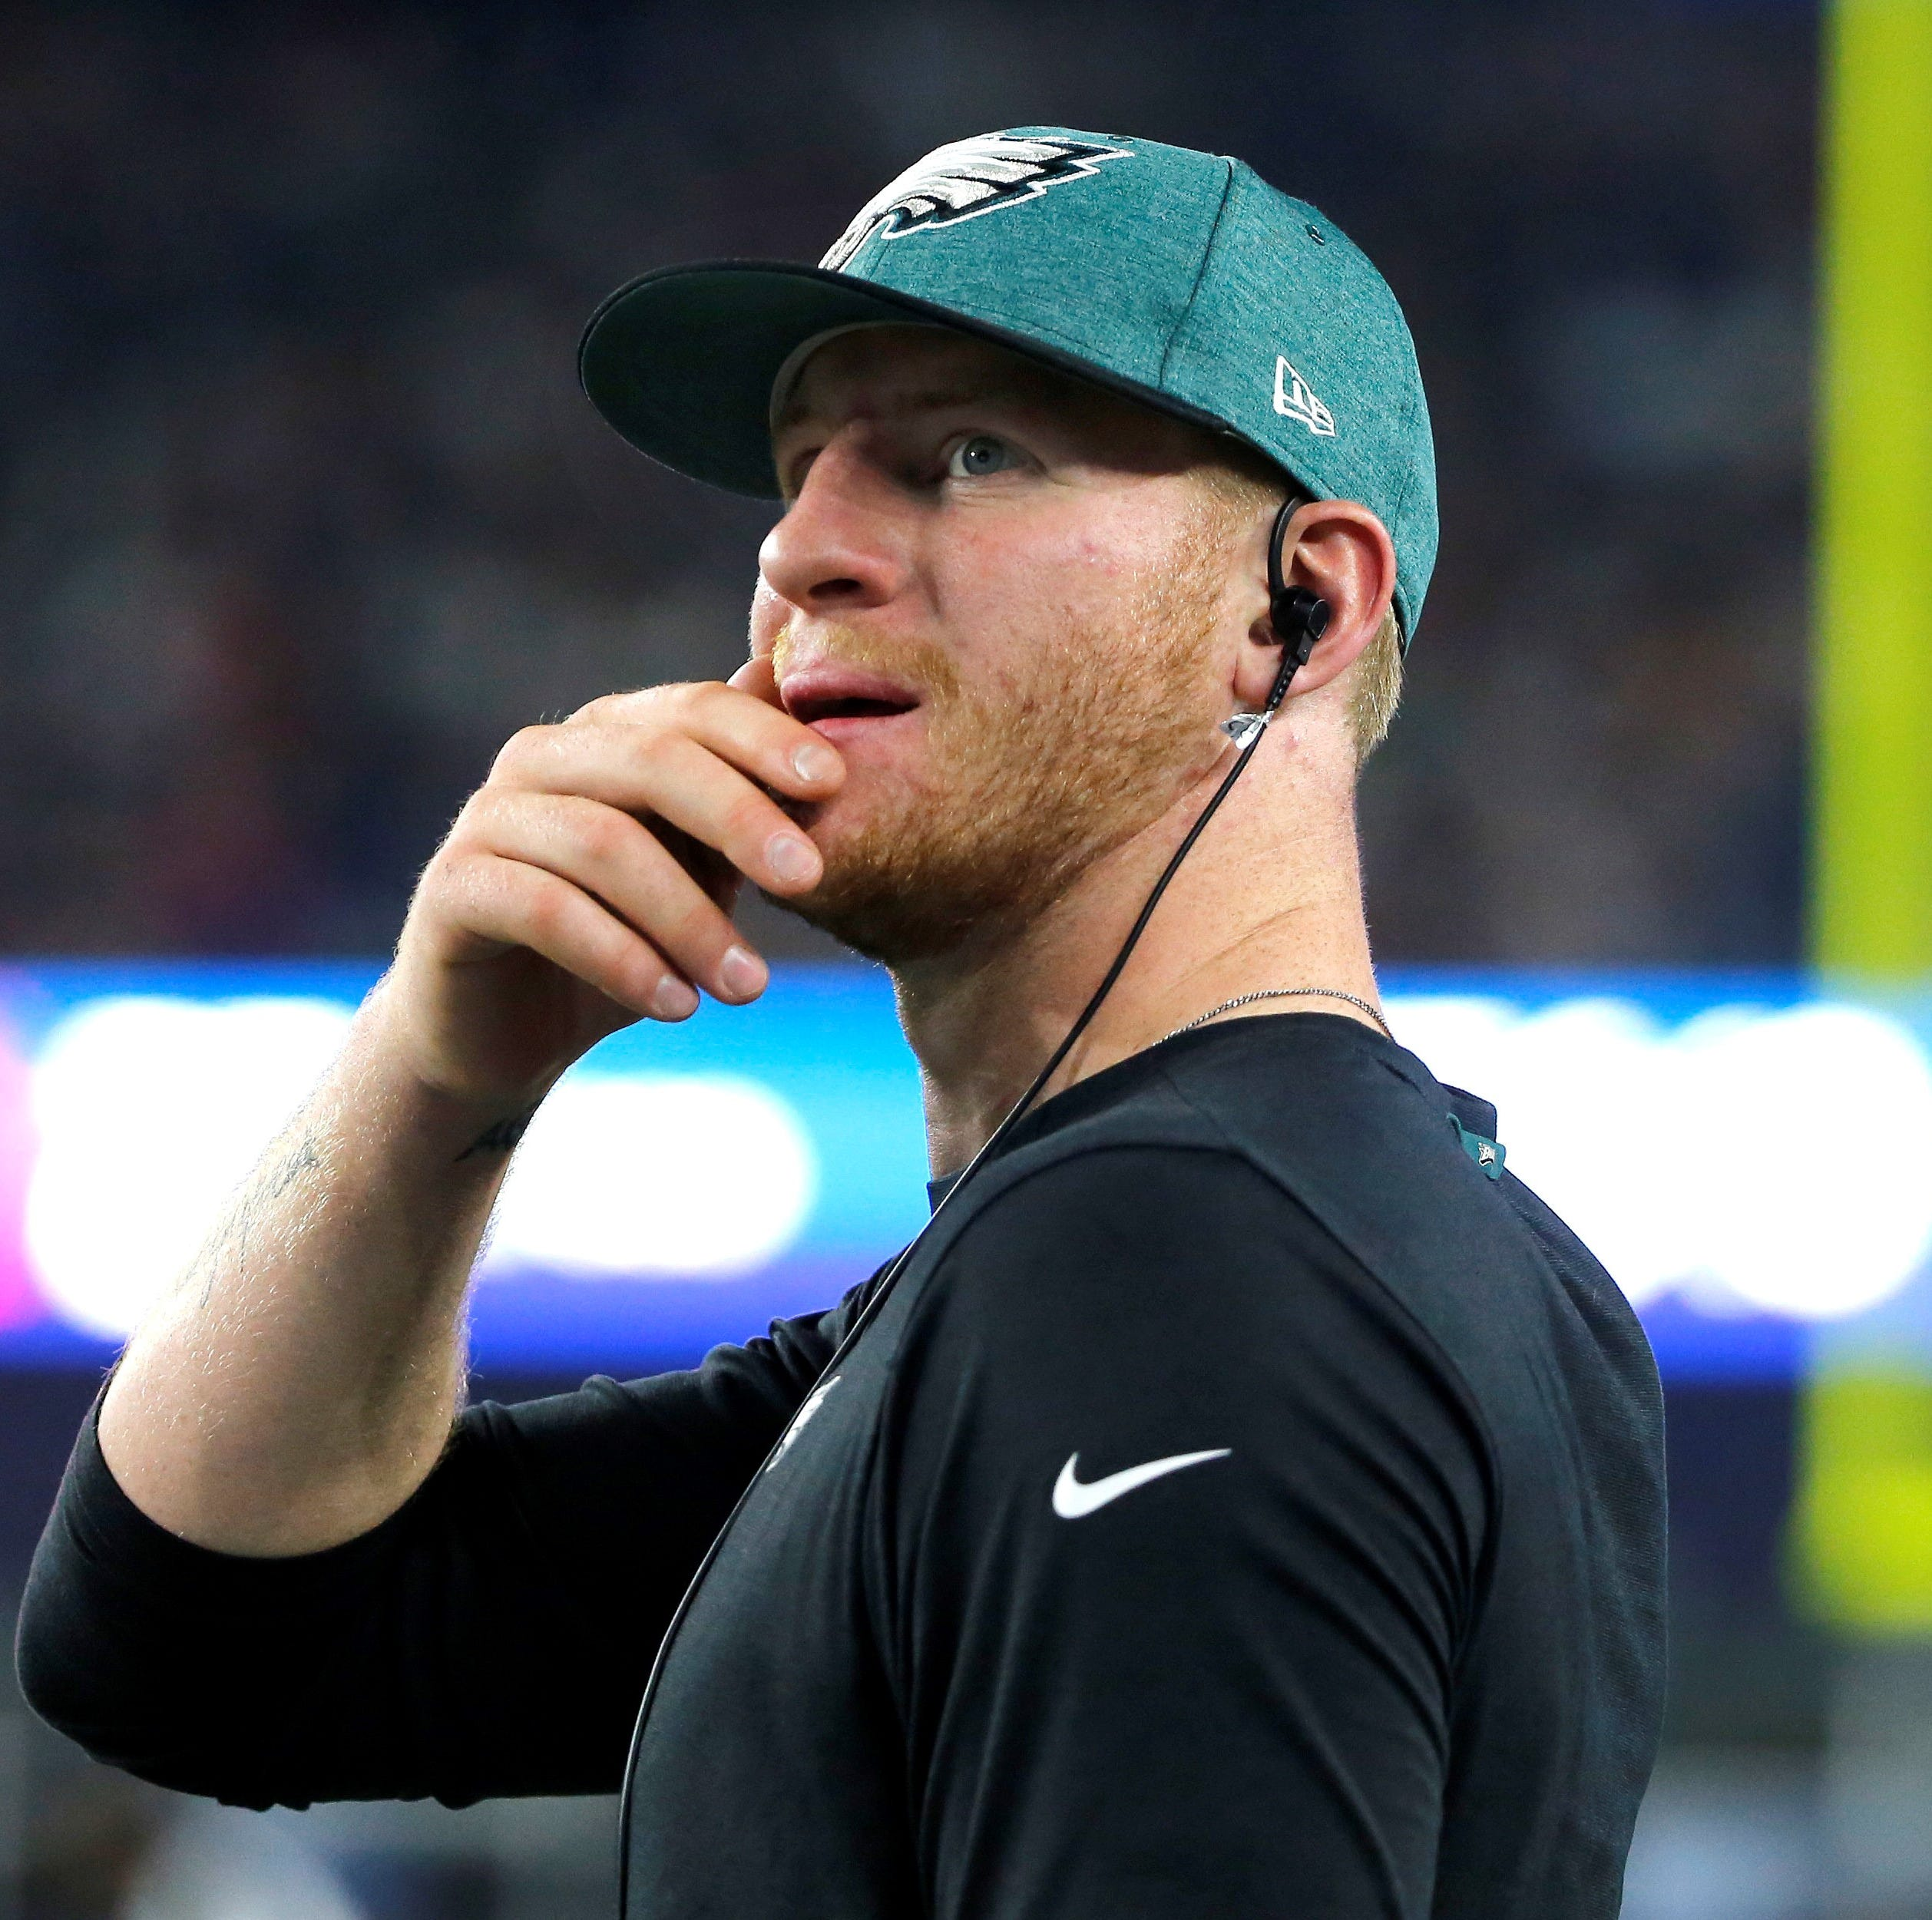 FIERRO: Report says Carson Wentz could return for Philadelphia Eagles as early as Sunday